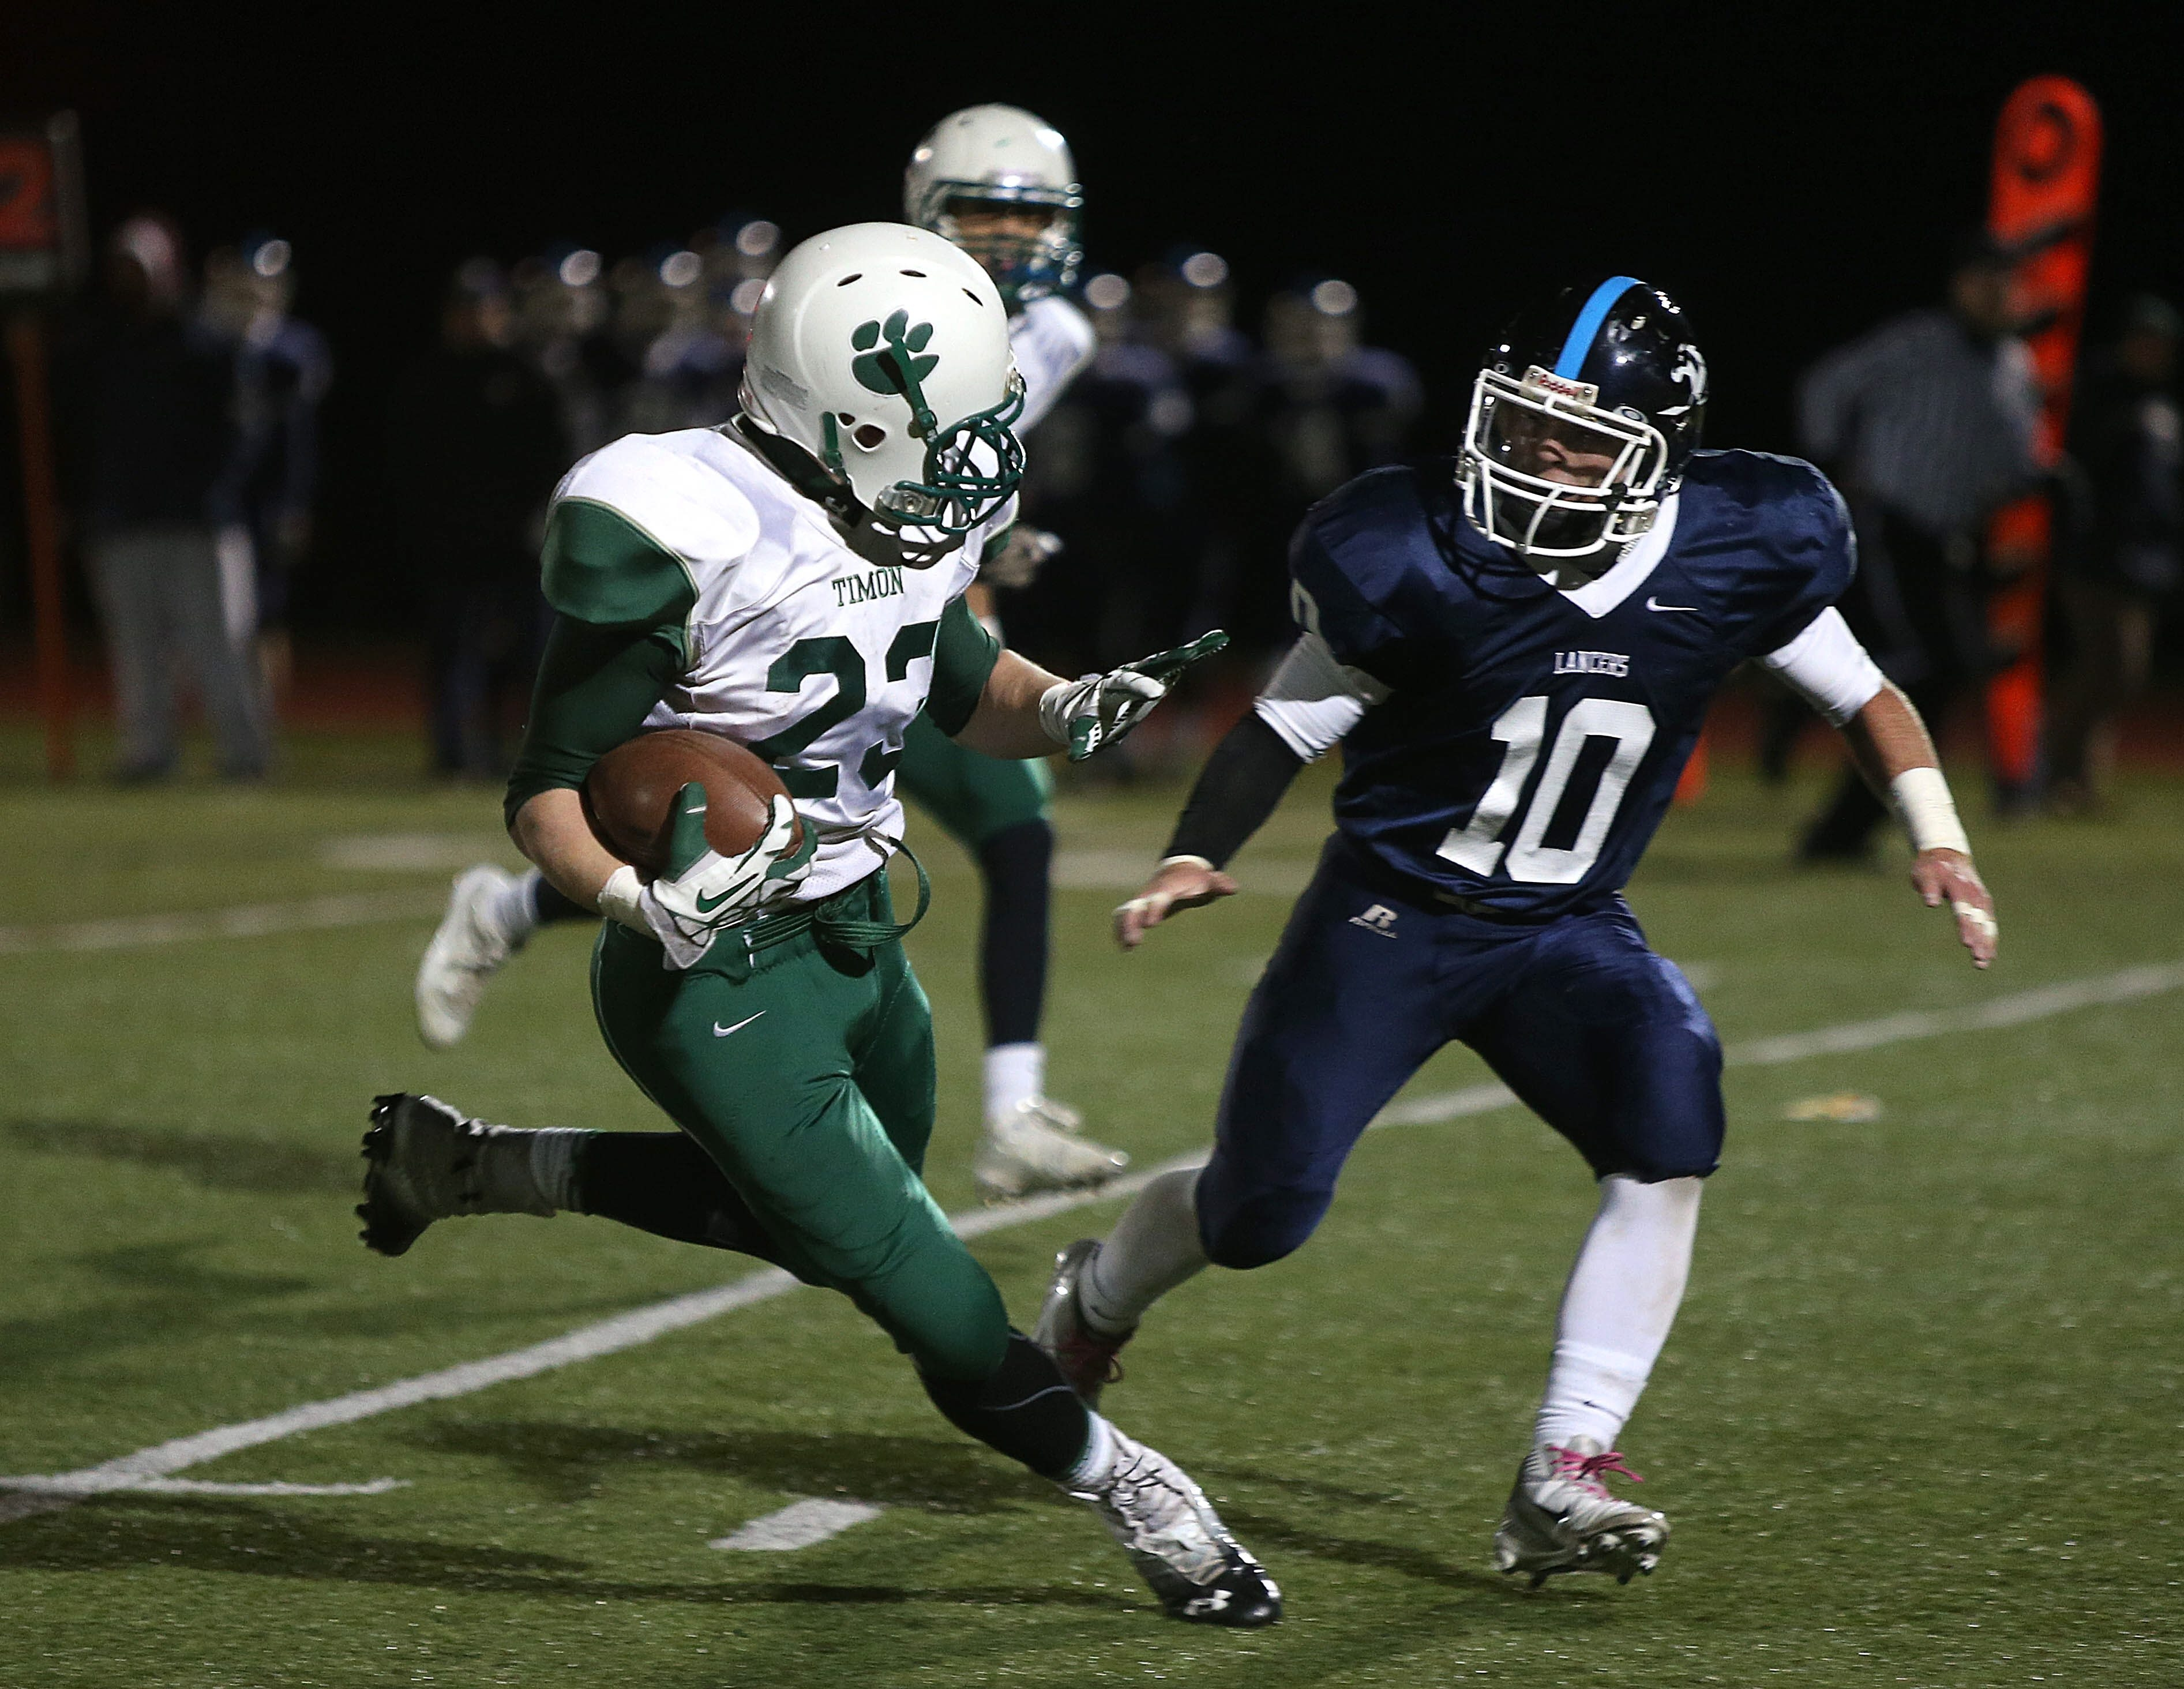 Bishop Timon-St. Jude's Gavin Caulfield is confronted by Justin Hersey (10) of St. Mary's.